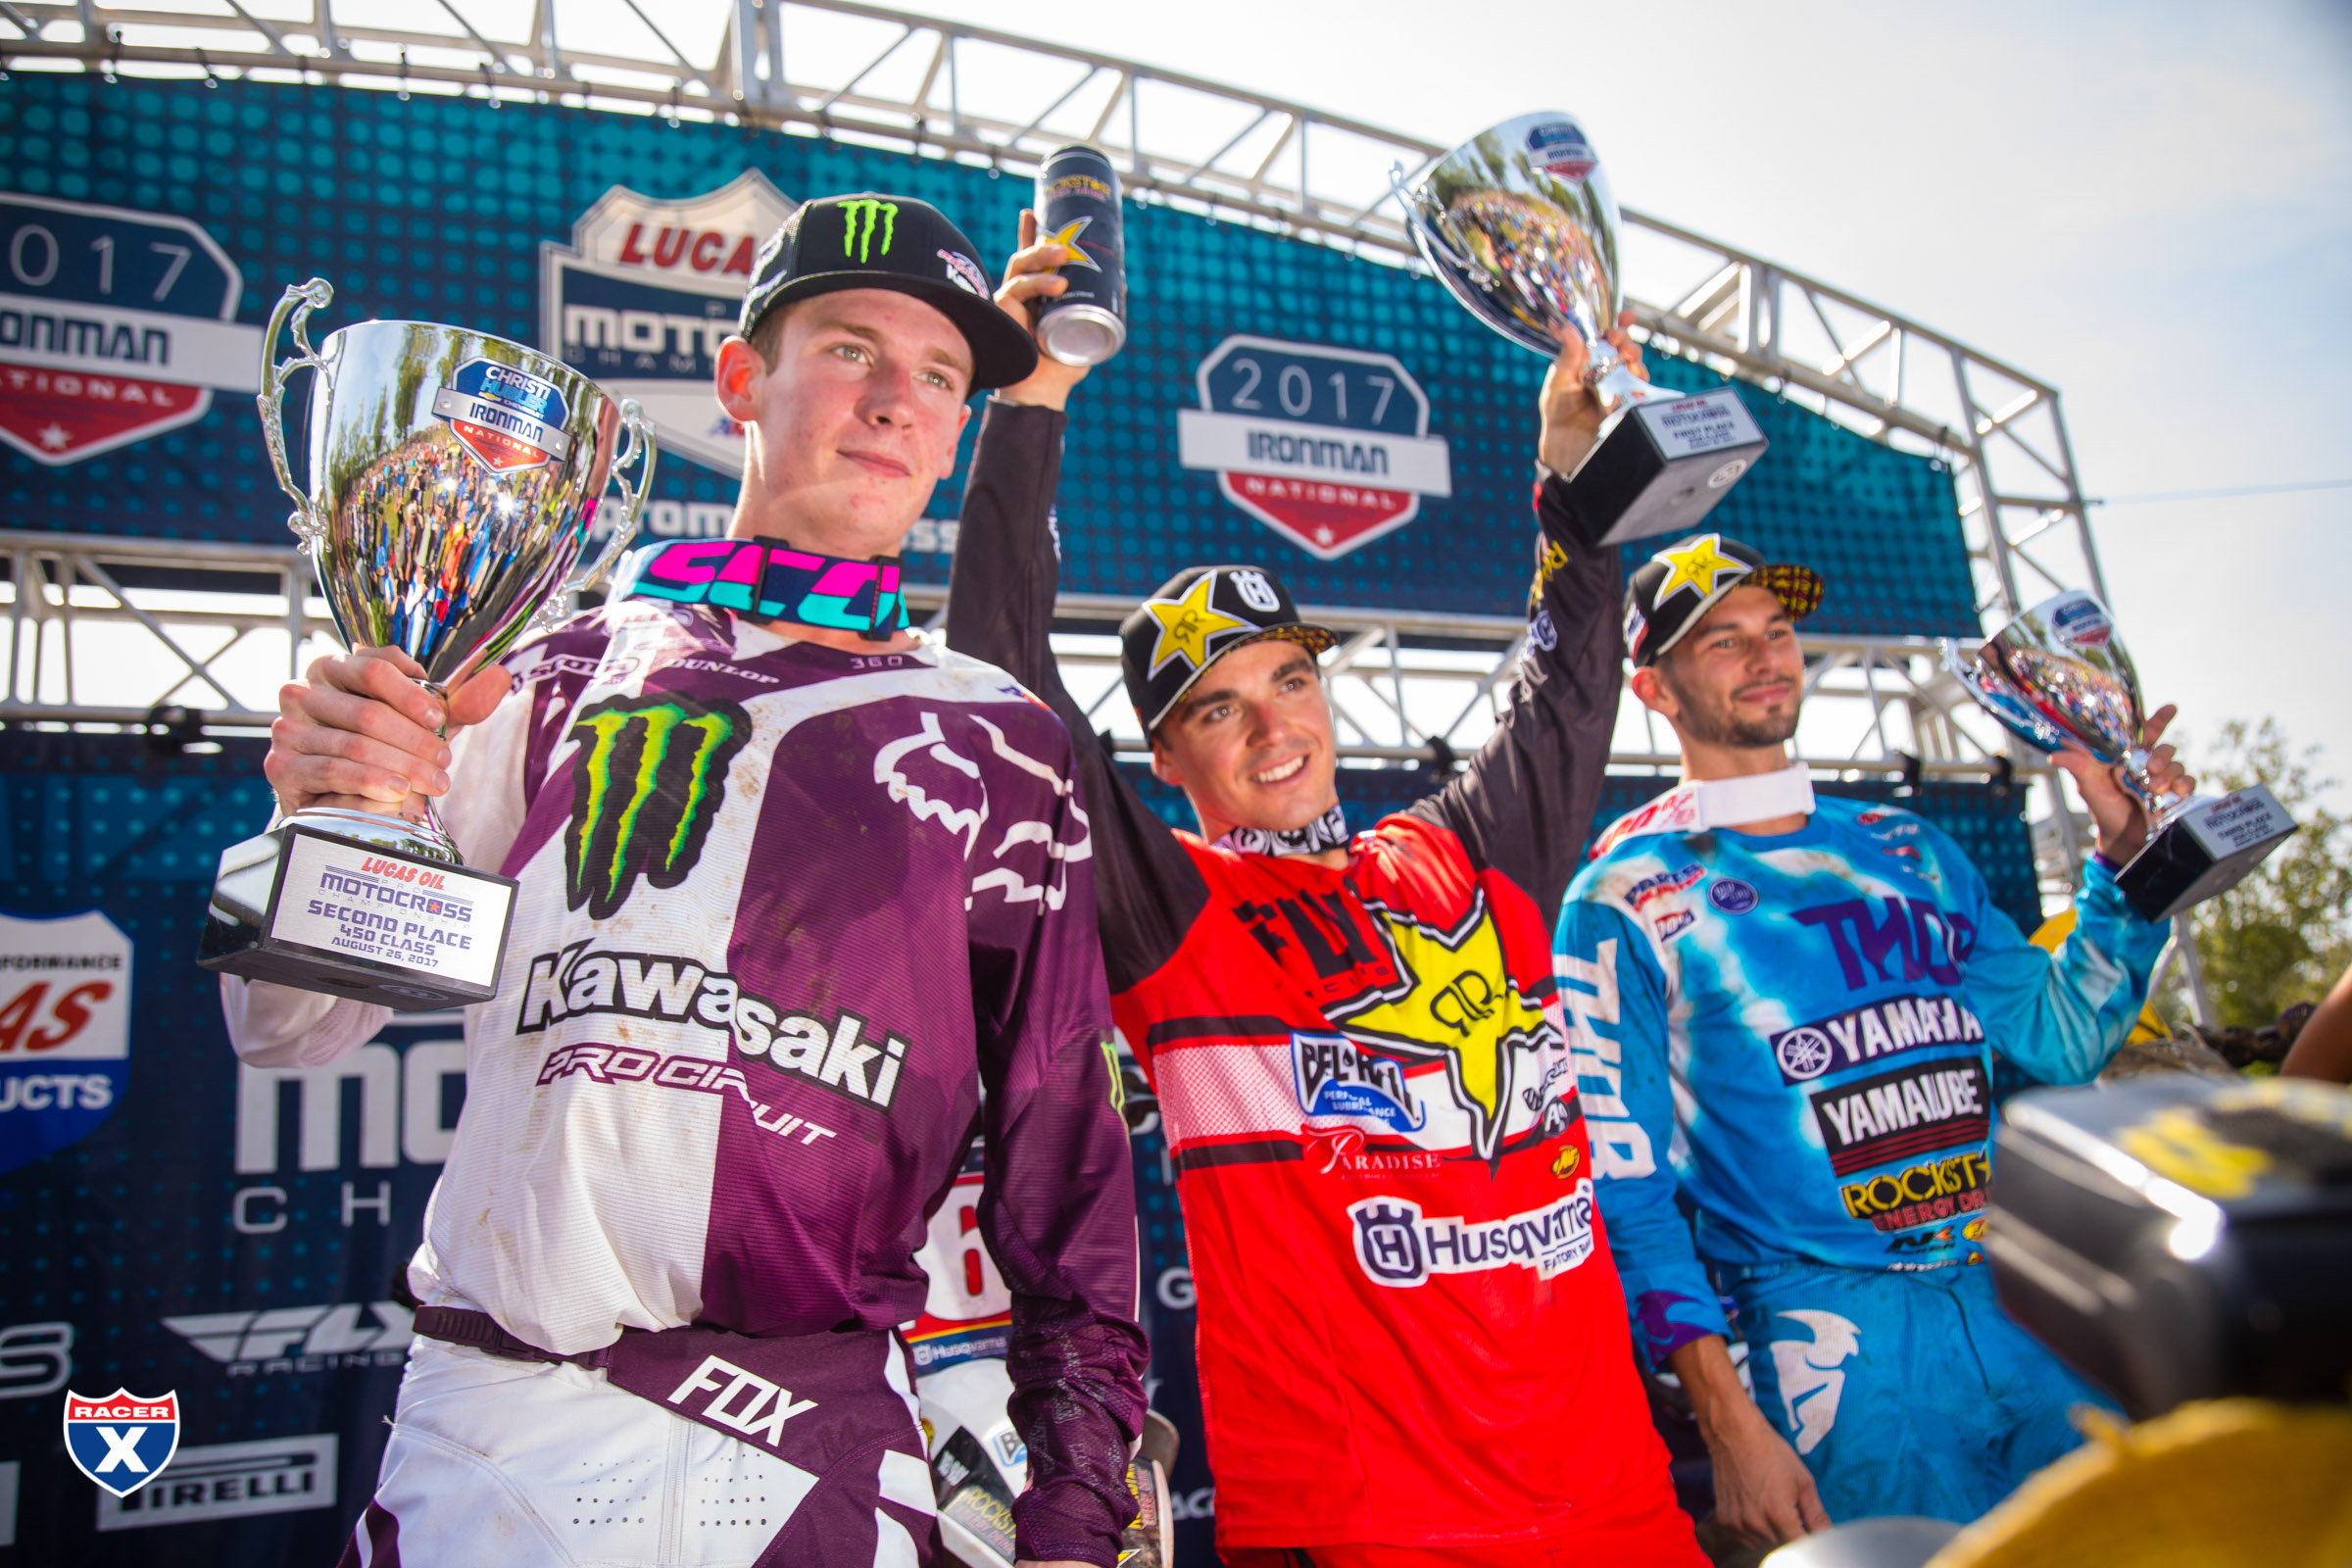 Podium_MX17_Ironman_JK_1476